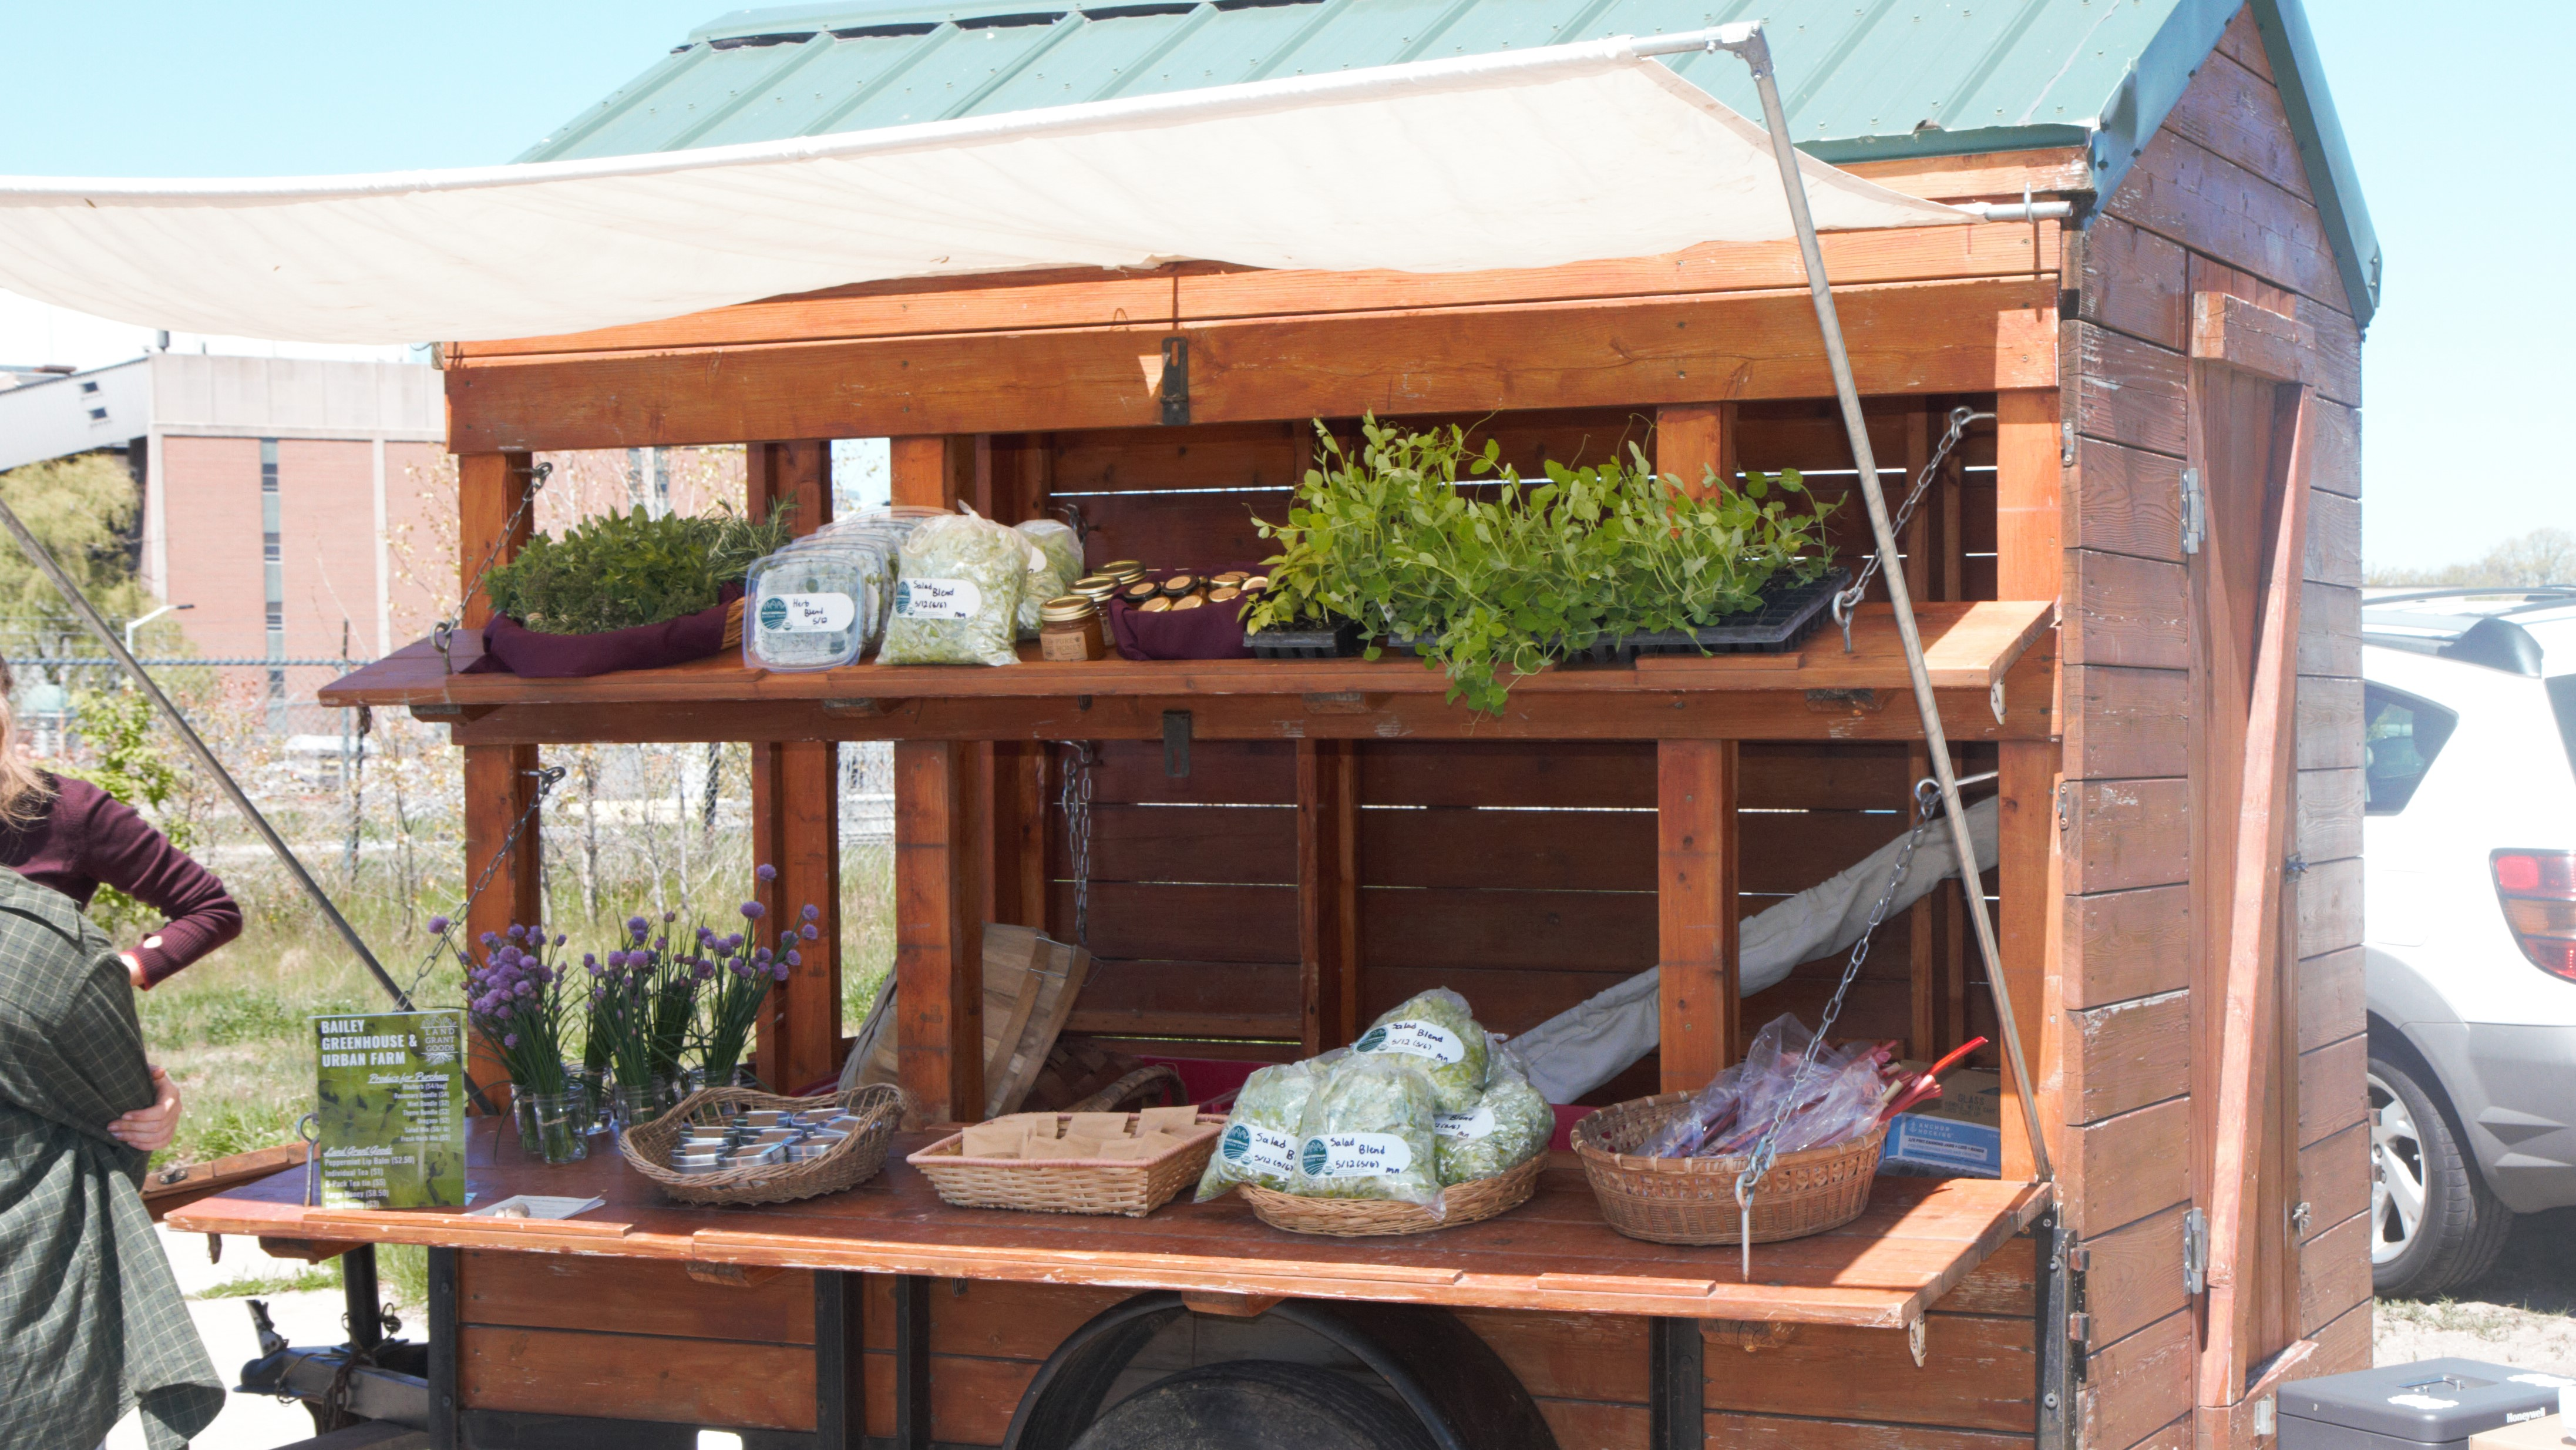 Summer Farm Stand Opens at the Drop-Off Center